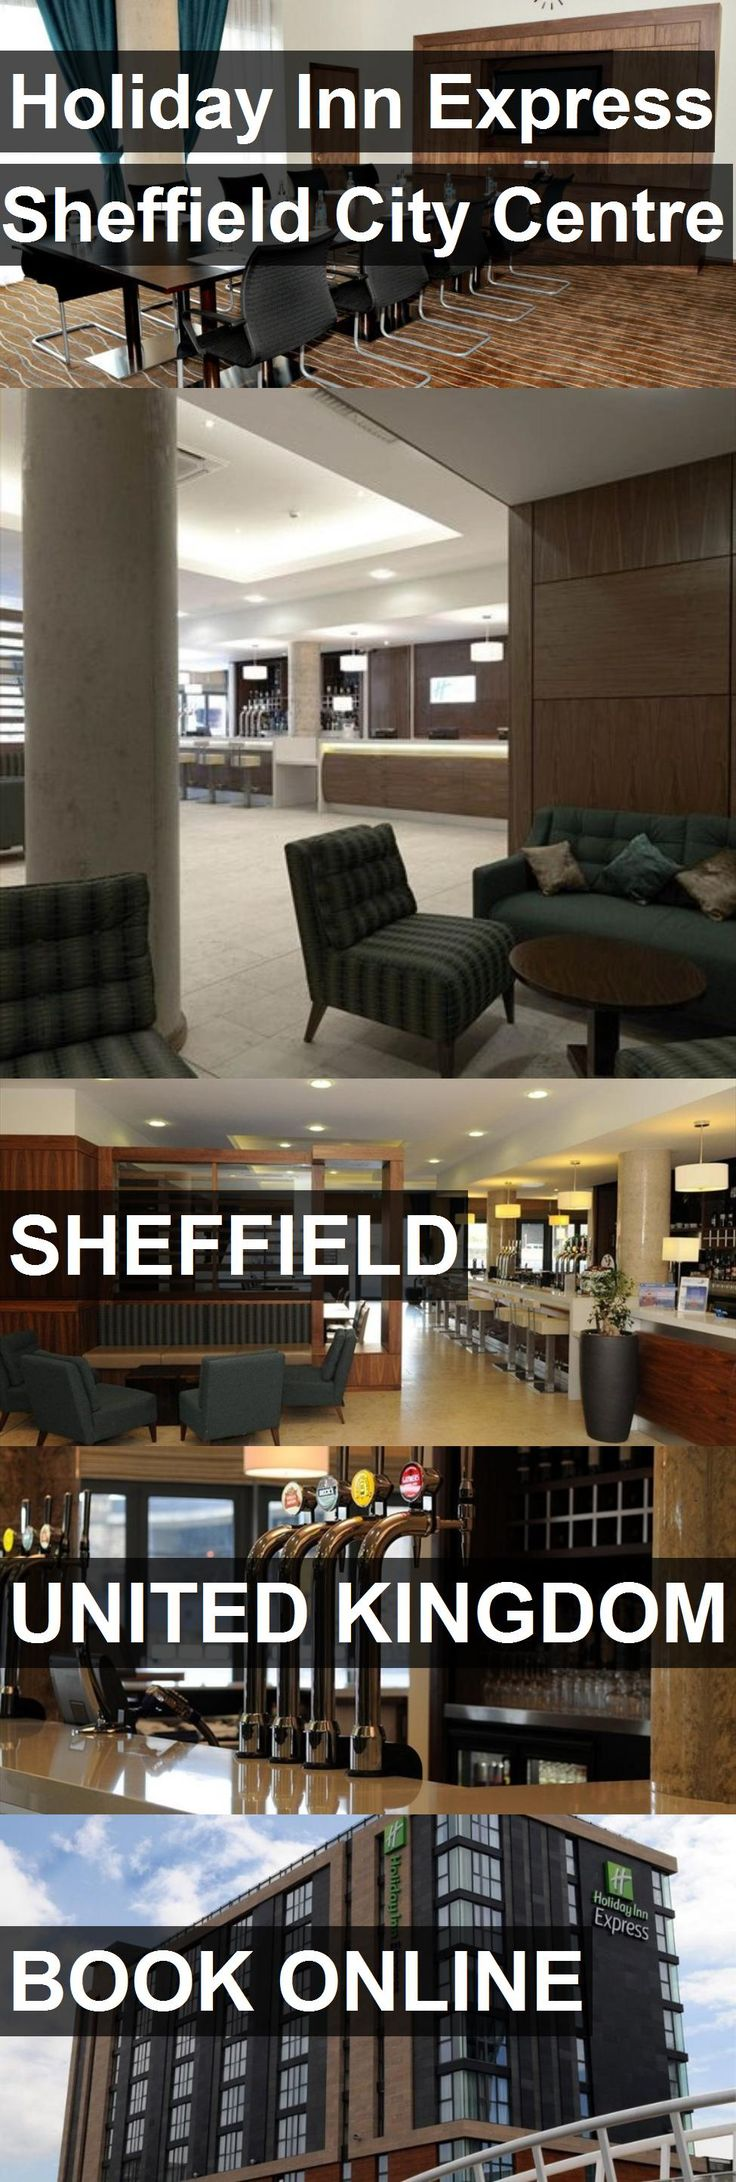 Hotel Holiday Inn Express Sheffield City Centre in Sheffield, United Kingdom. For more information, photos, reviews and best prices please follow the link. #UnitedKingdom #Sheffield #travel #vacation #hotel